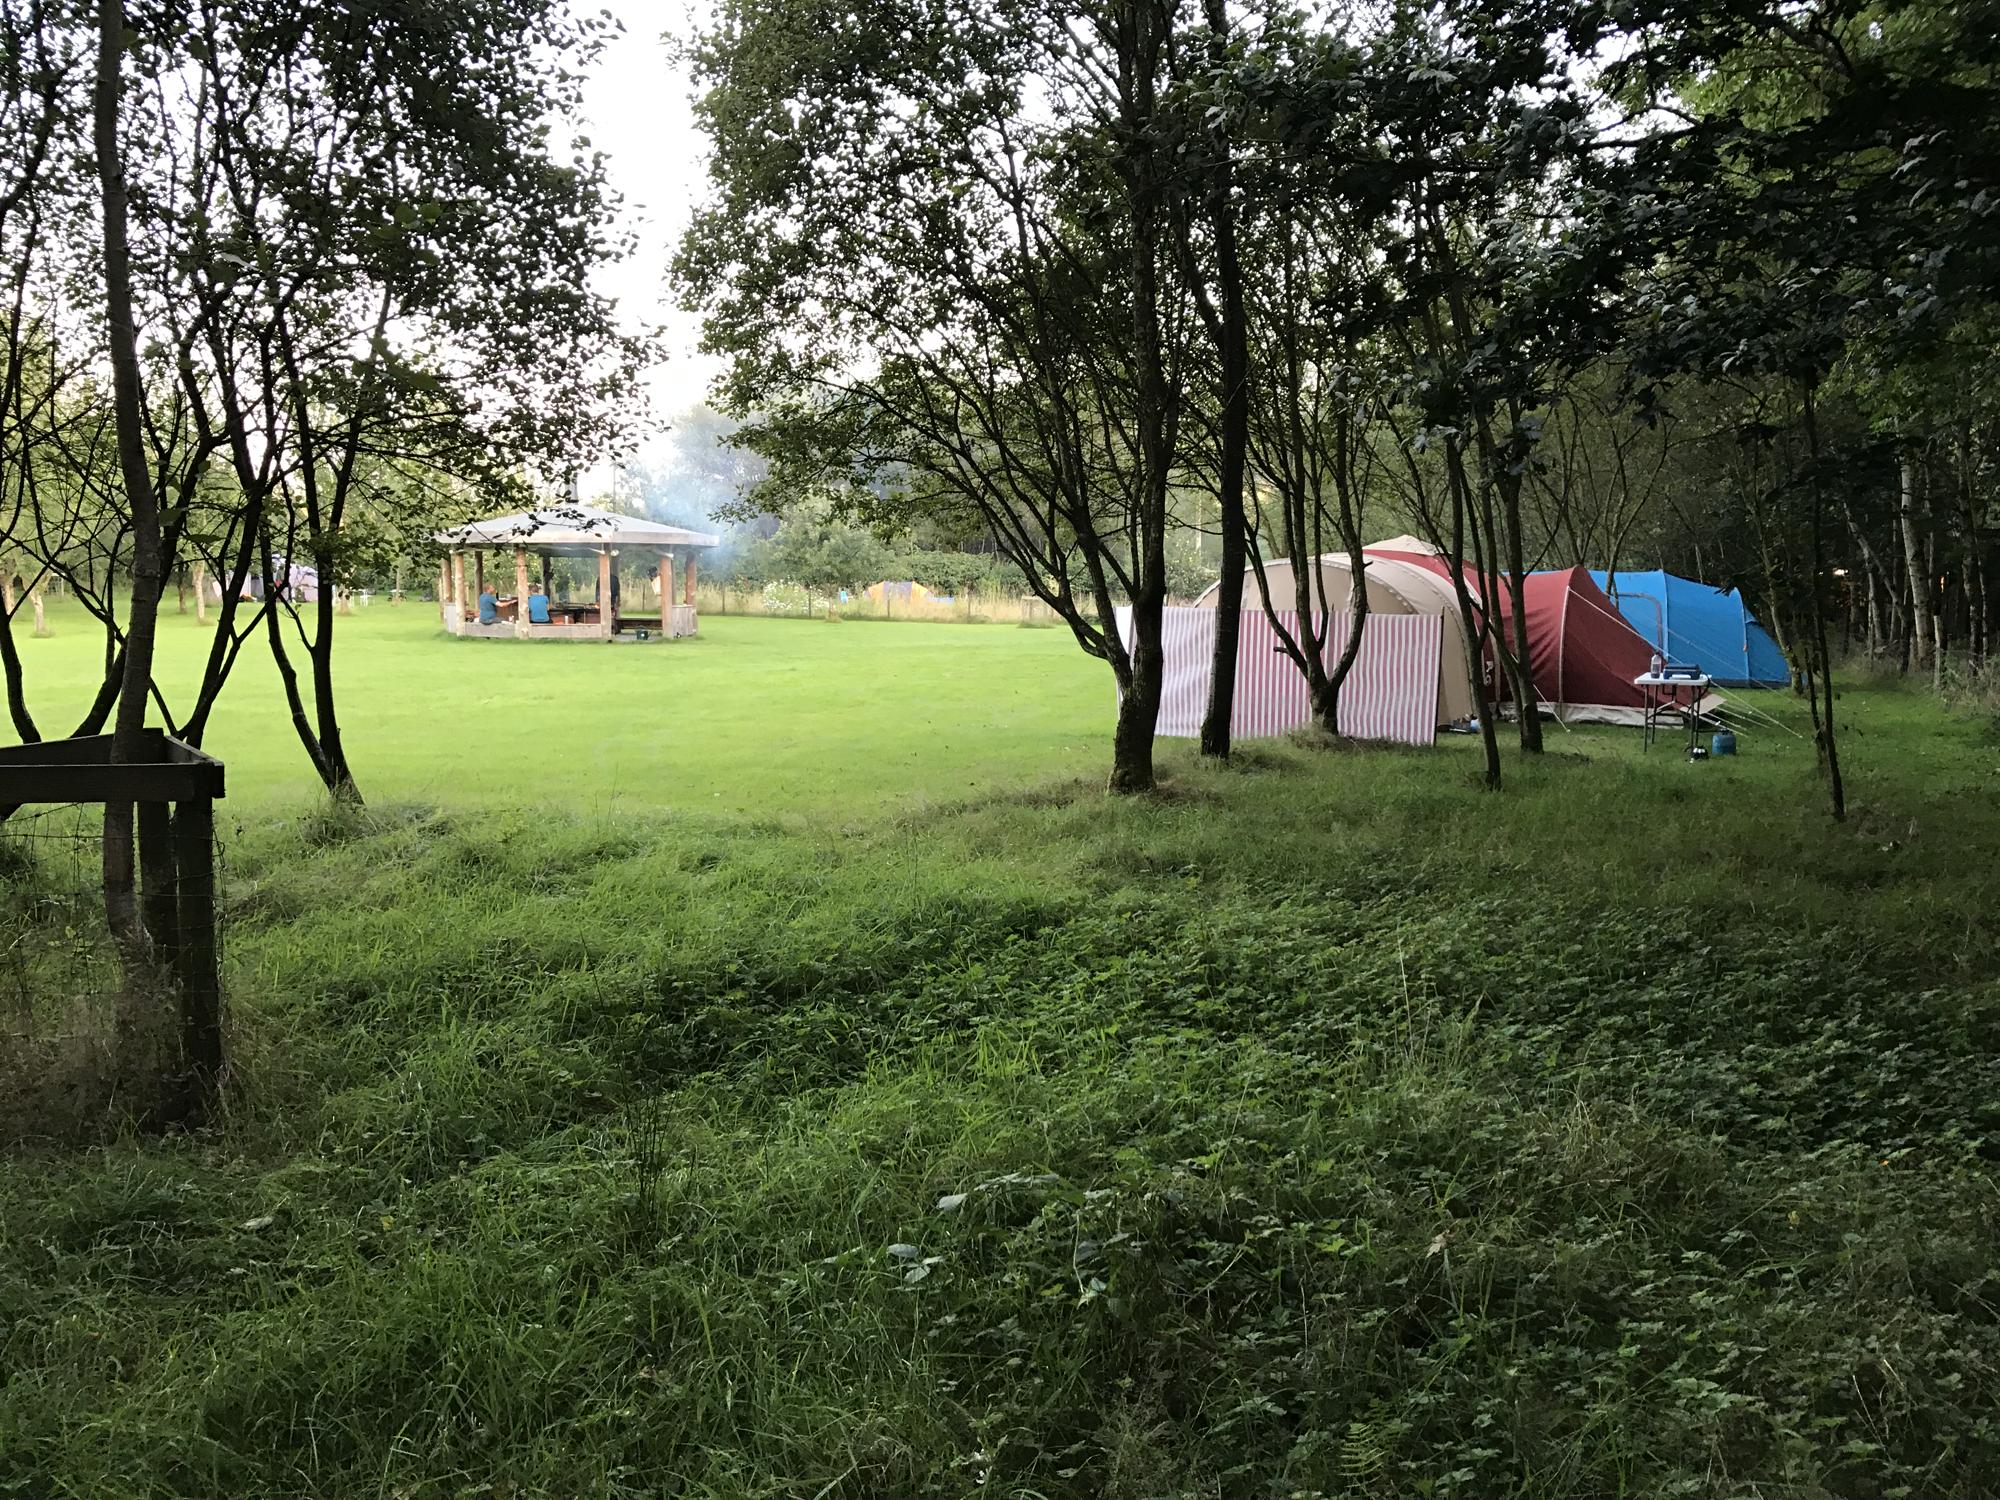 Campsites in Mid Wales holidays at I Love This Campsite